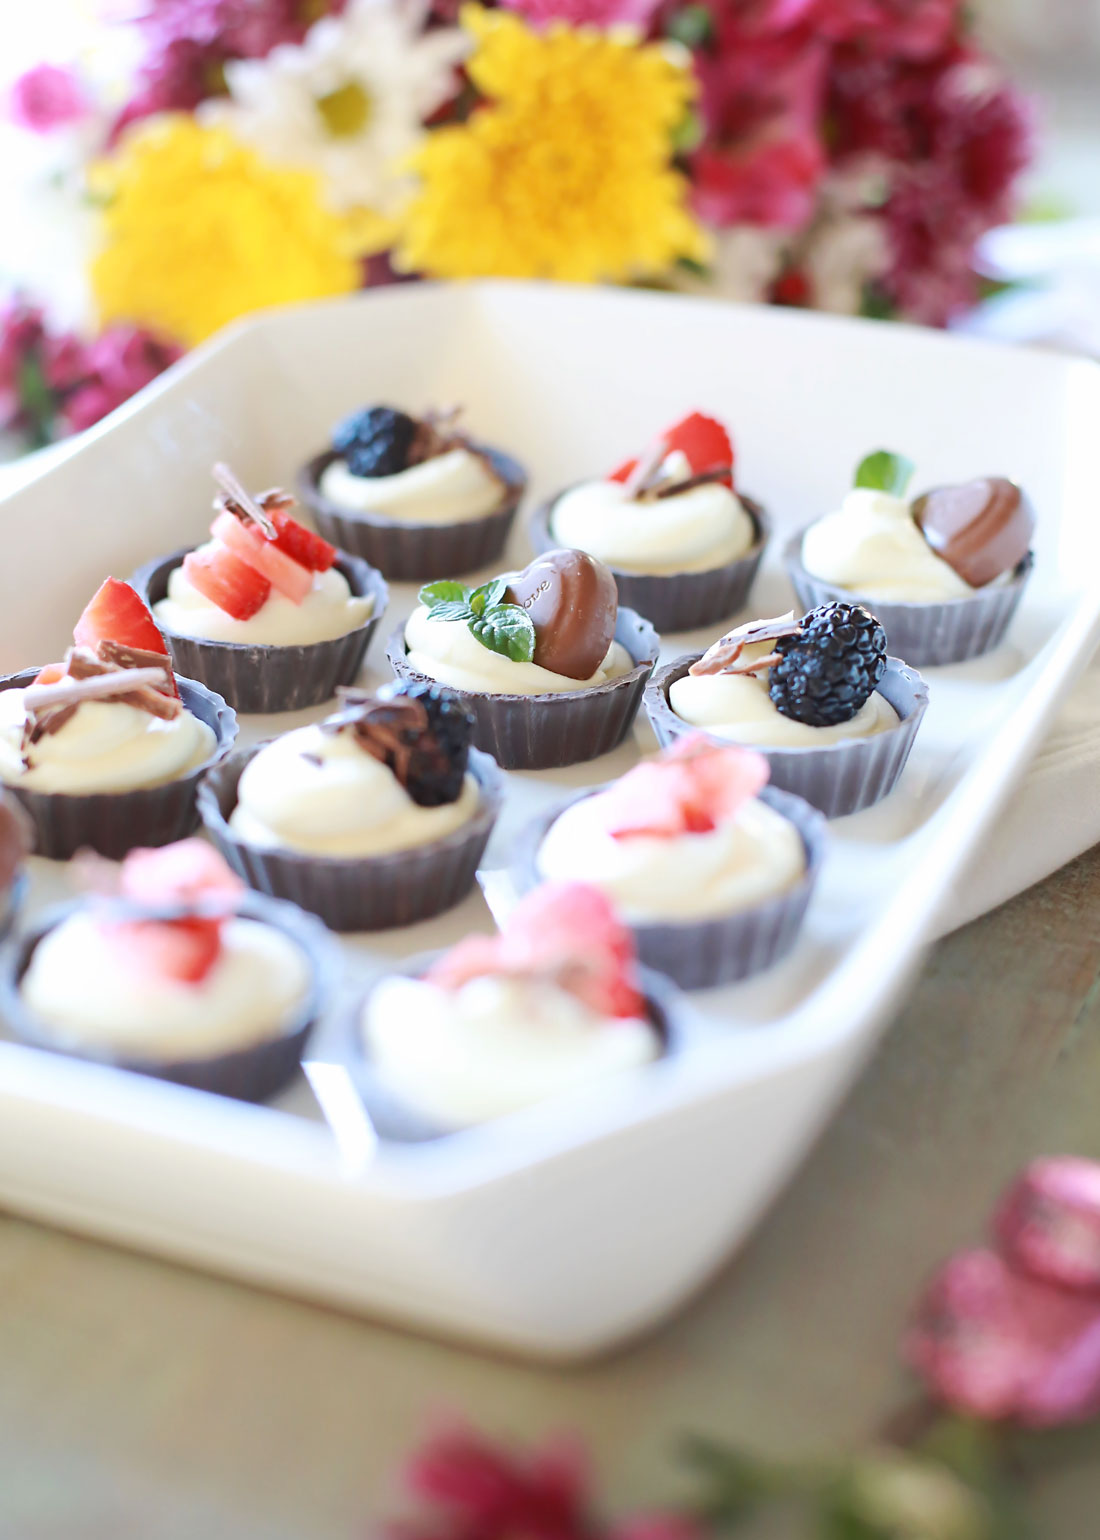 miniature chocolate cheesecakes with delicious toppings!